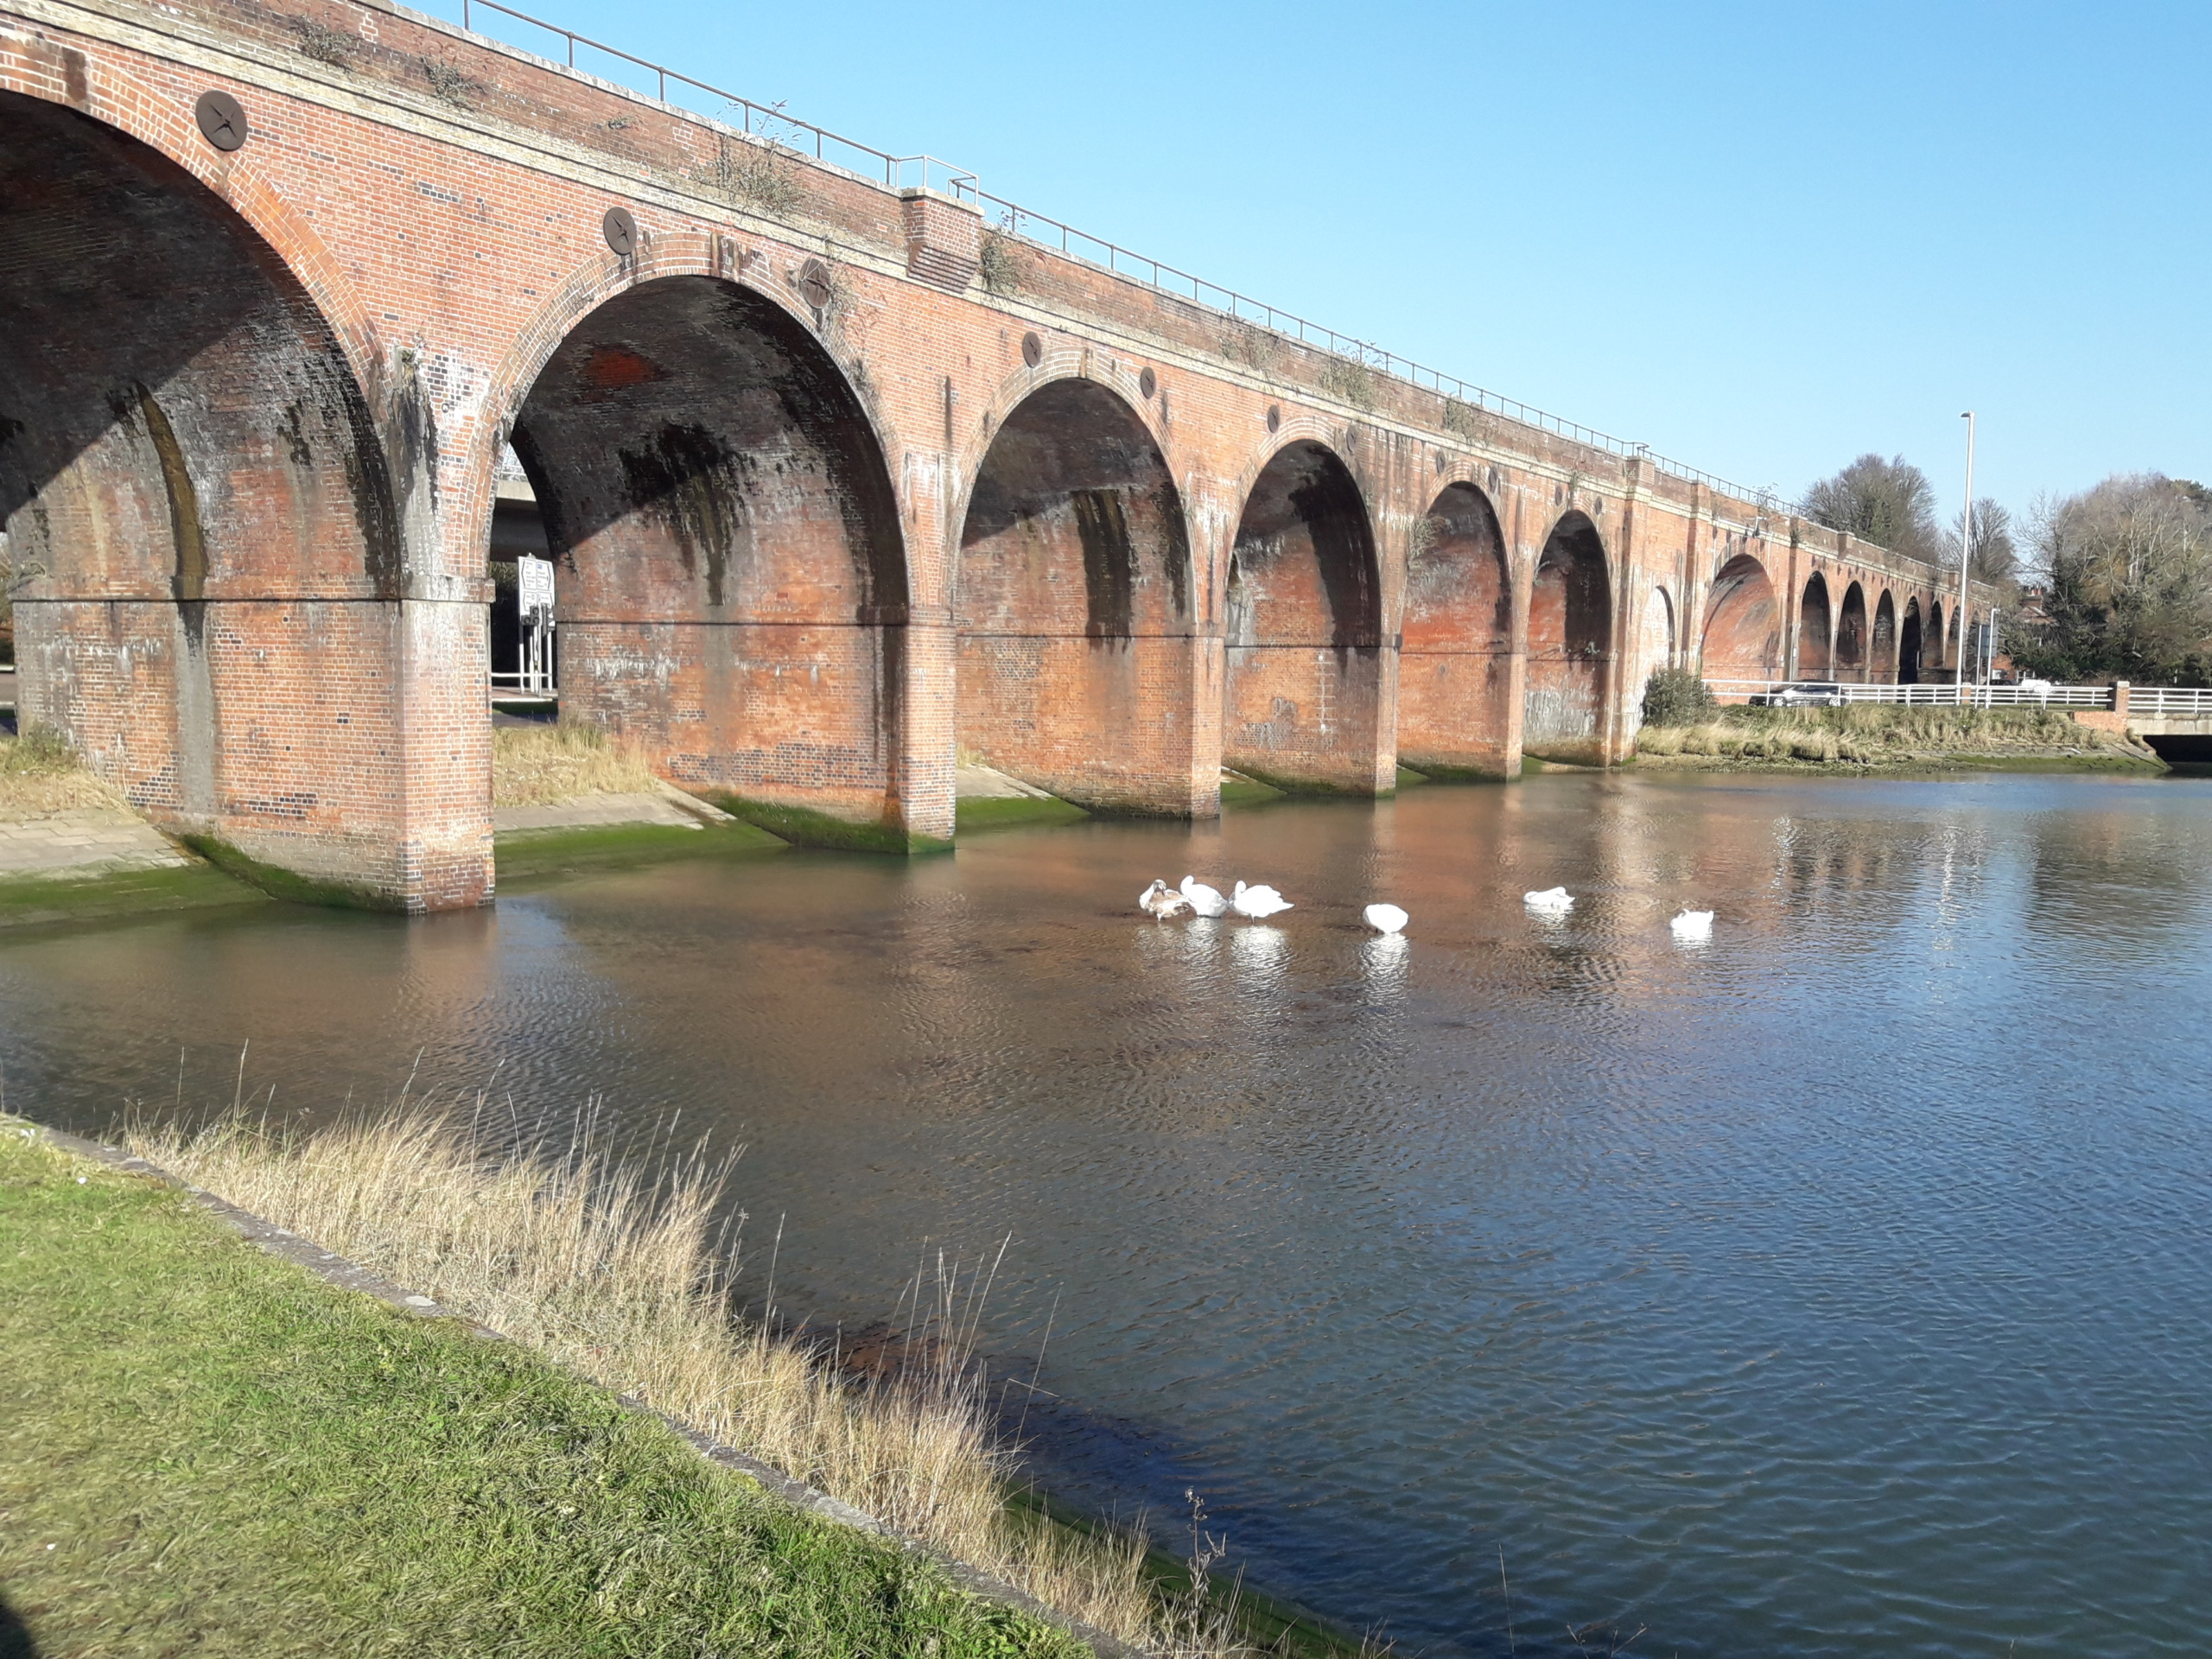 Viaduct over water